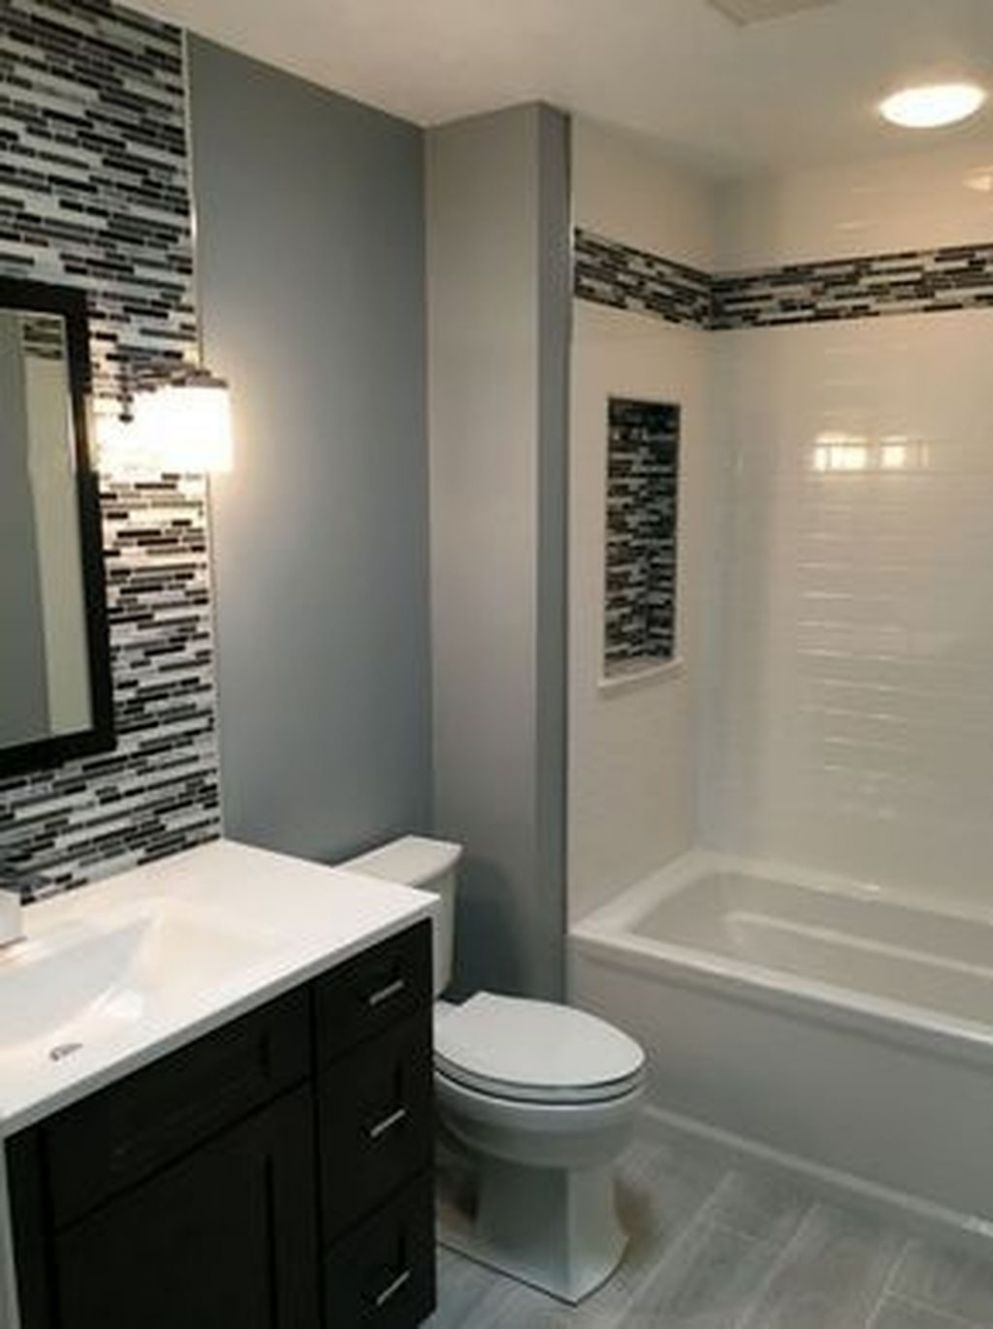 10+ Inexpensive Small Bathroom Remodel Ideas On A Budget - TRENDECORS - bathroom ideas on a budget